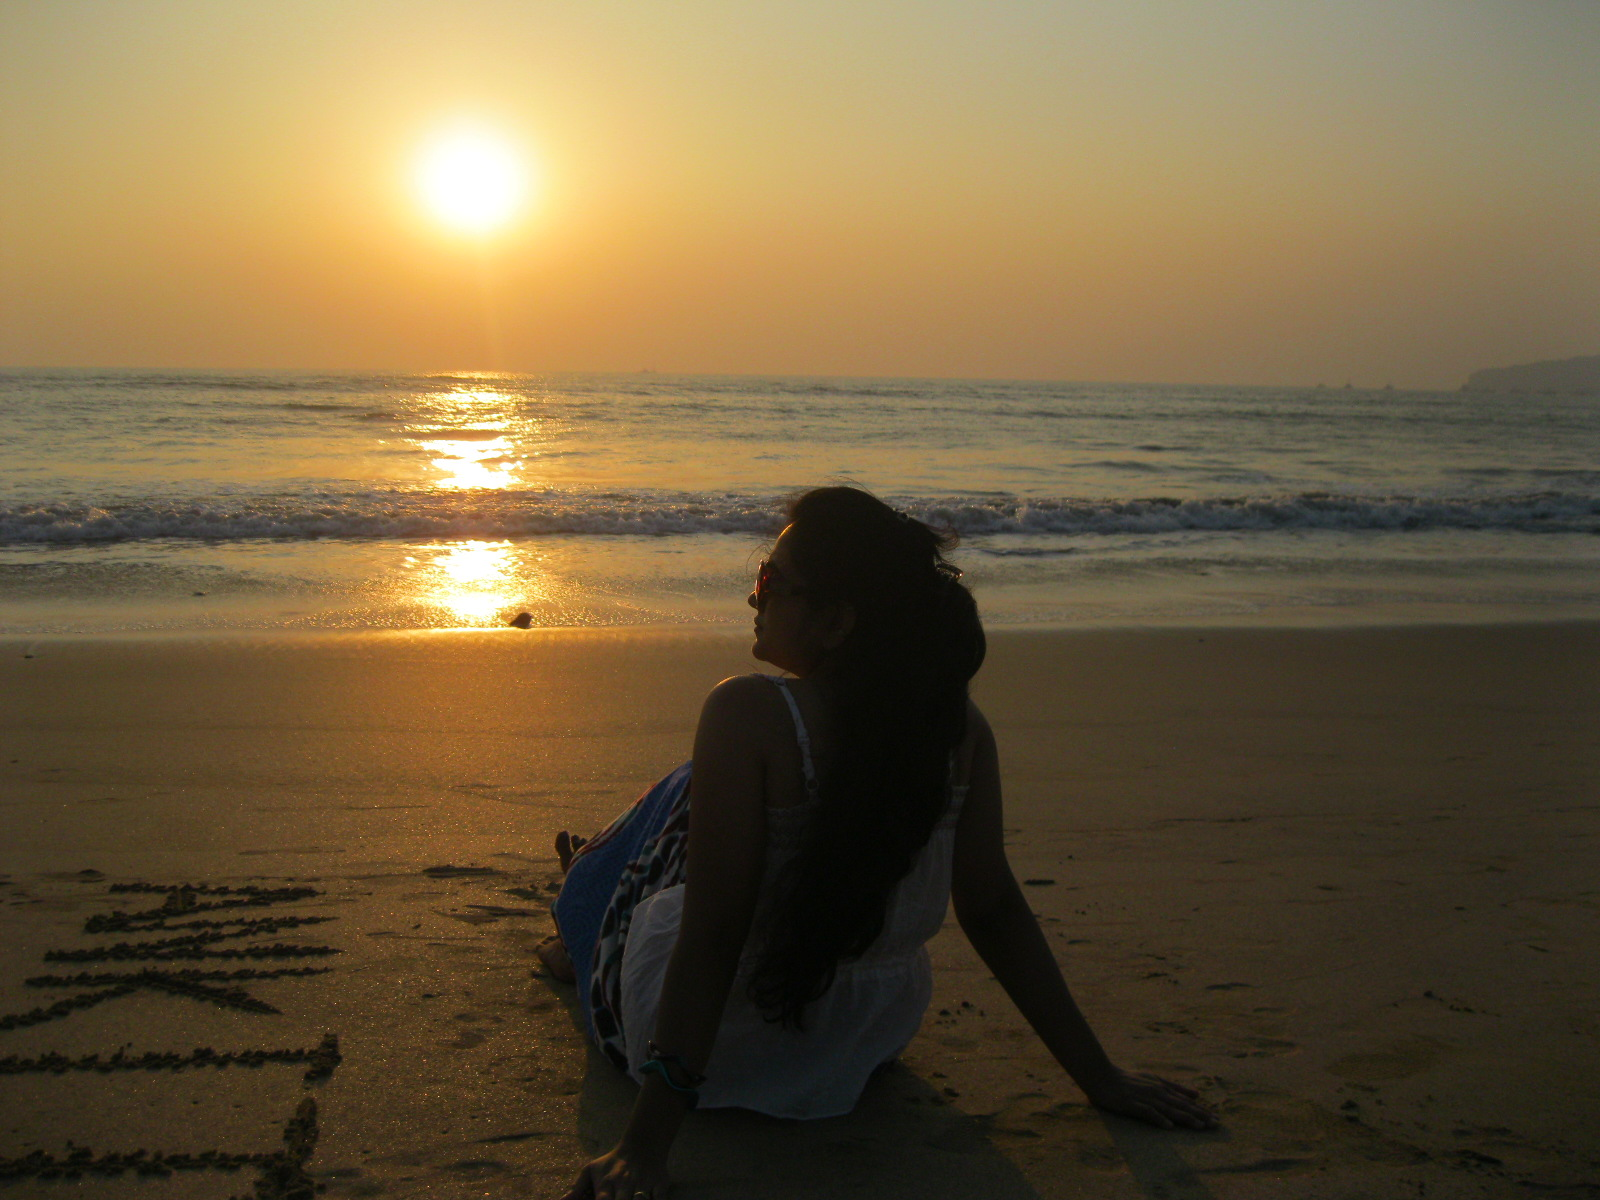 The Picture was shot during sunset at Velneshwar Beach